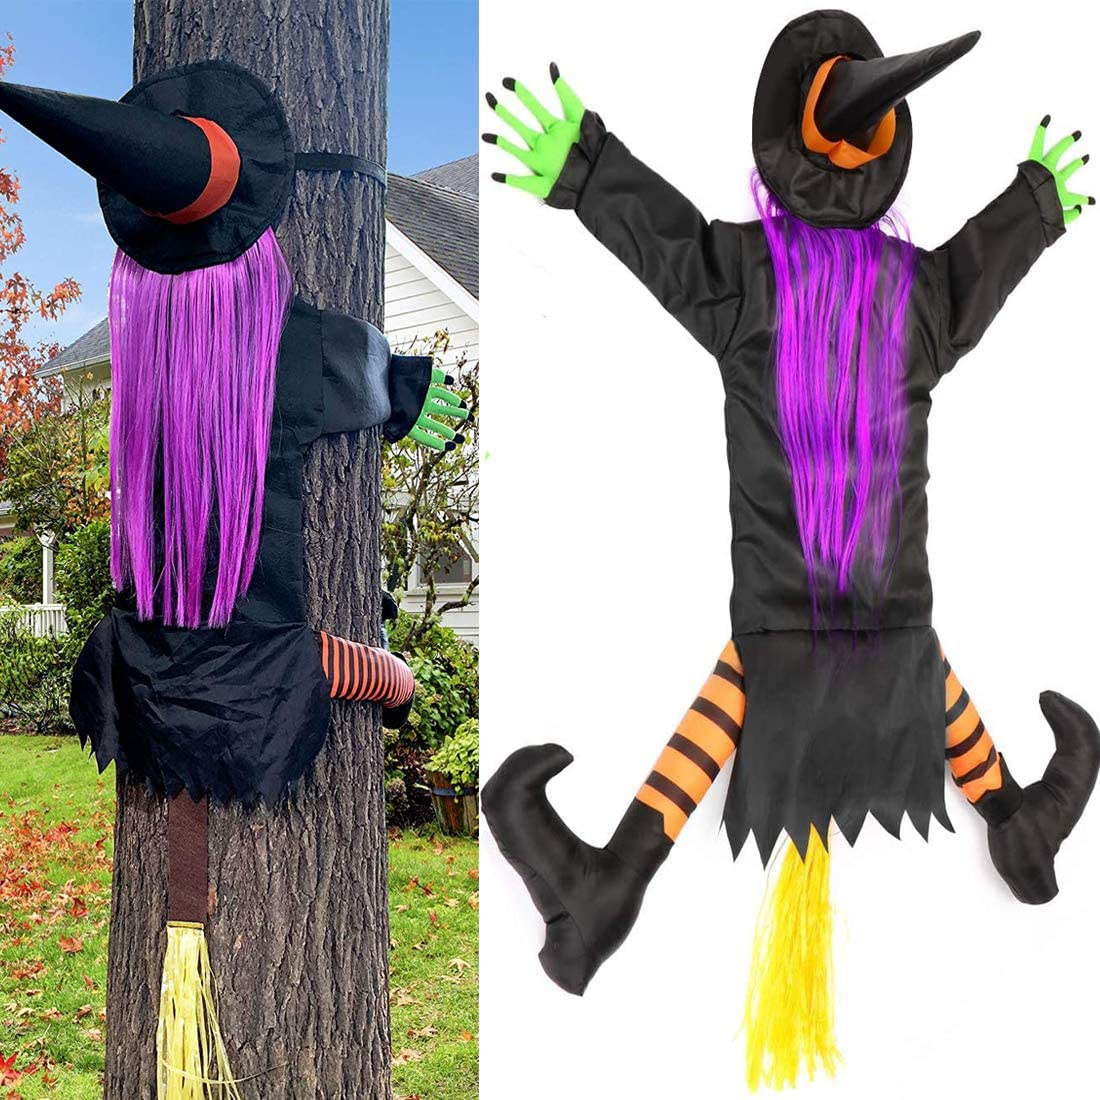 TOPARCHERY Halloween Crashing Witch Decorations Into Tree, Halloween Outdoor Witch Crashing Decorations Hanging Witch